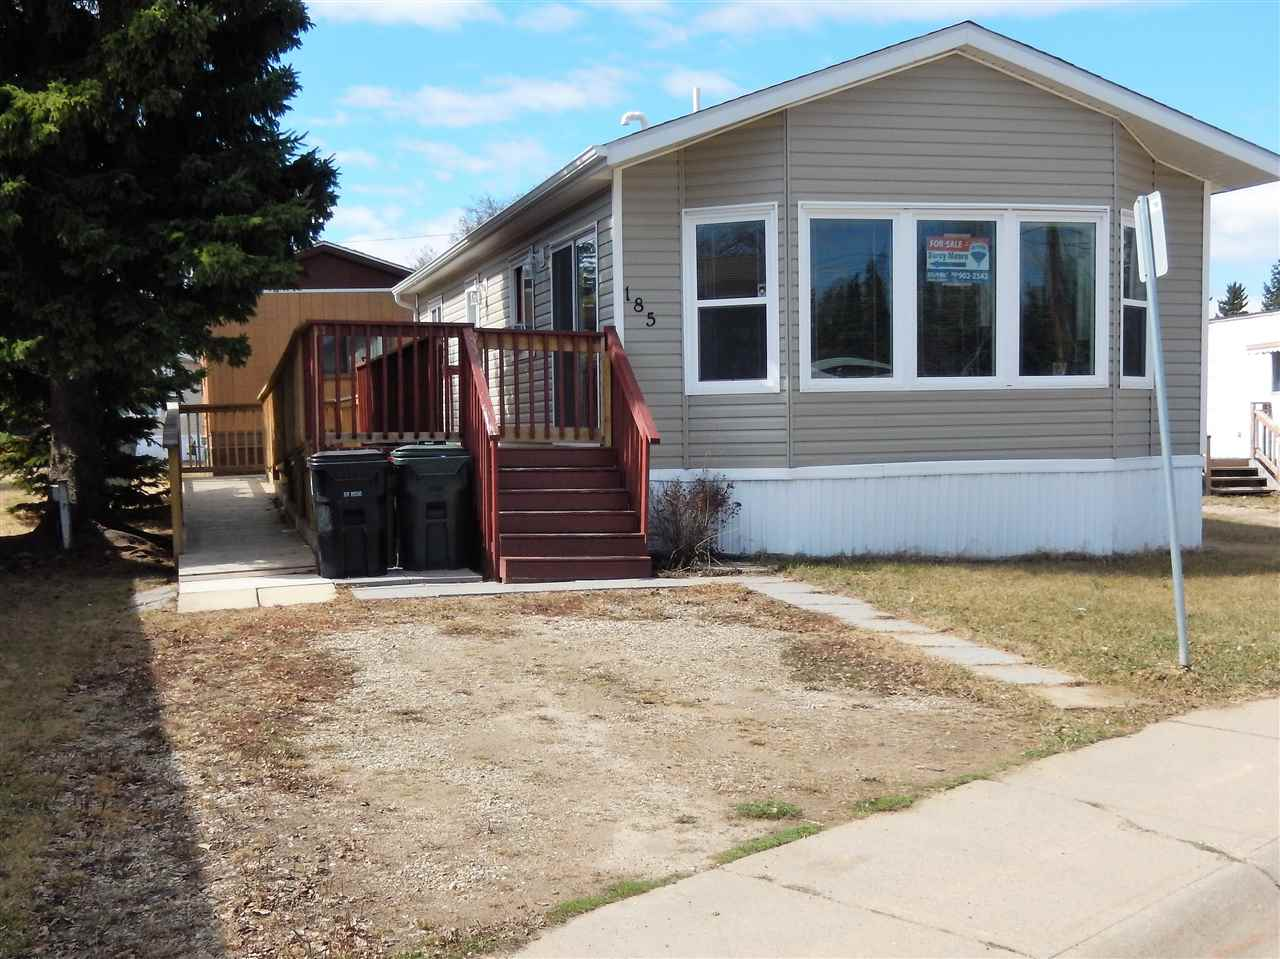 JUST LIKE NEW!!  This 20 WIDE home has barely been lived in and offers a super cool pad for a single person, couple, or even a small family....it would be especially good for someone with DISABILITITIES as it offers a PRESSURE TREATED RAMP, SPACIOUS MASTR BEDR & BATHROOM! There is a PATIO DOOR that leads onto the deck and the MAIN DOOR is wide enough for a Wheel Chair Scooter. The GORGEOUS KITCHEN has a RAISED EATING BAR, 4 BLACK APPLIANCES & tons of COUNTER SPACE!  There is also a DEN that could serve as a second bedroom. The SPACIOUS LIVING RM with BIG BAY WINDOWS sits at the front overlooking the street.  The home is right on Weston Drive on the edge of the park, so it doesn't  feel like you are in a park.  Mobile City is walking distance to a great many amenities including the walking/biking trails system.